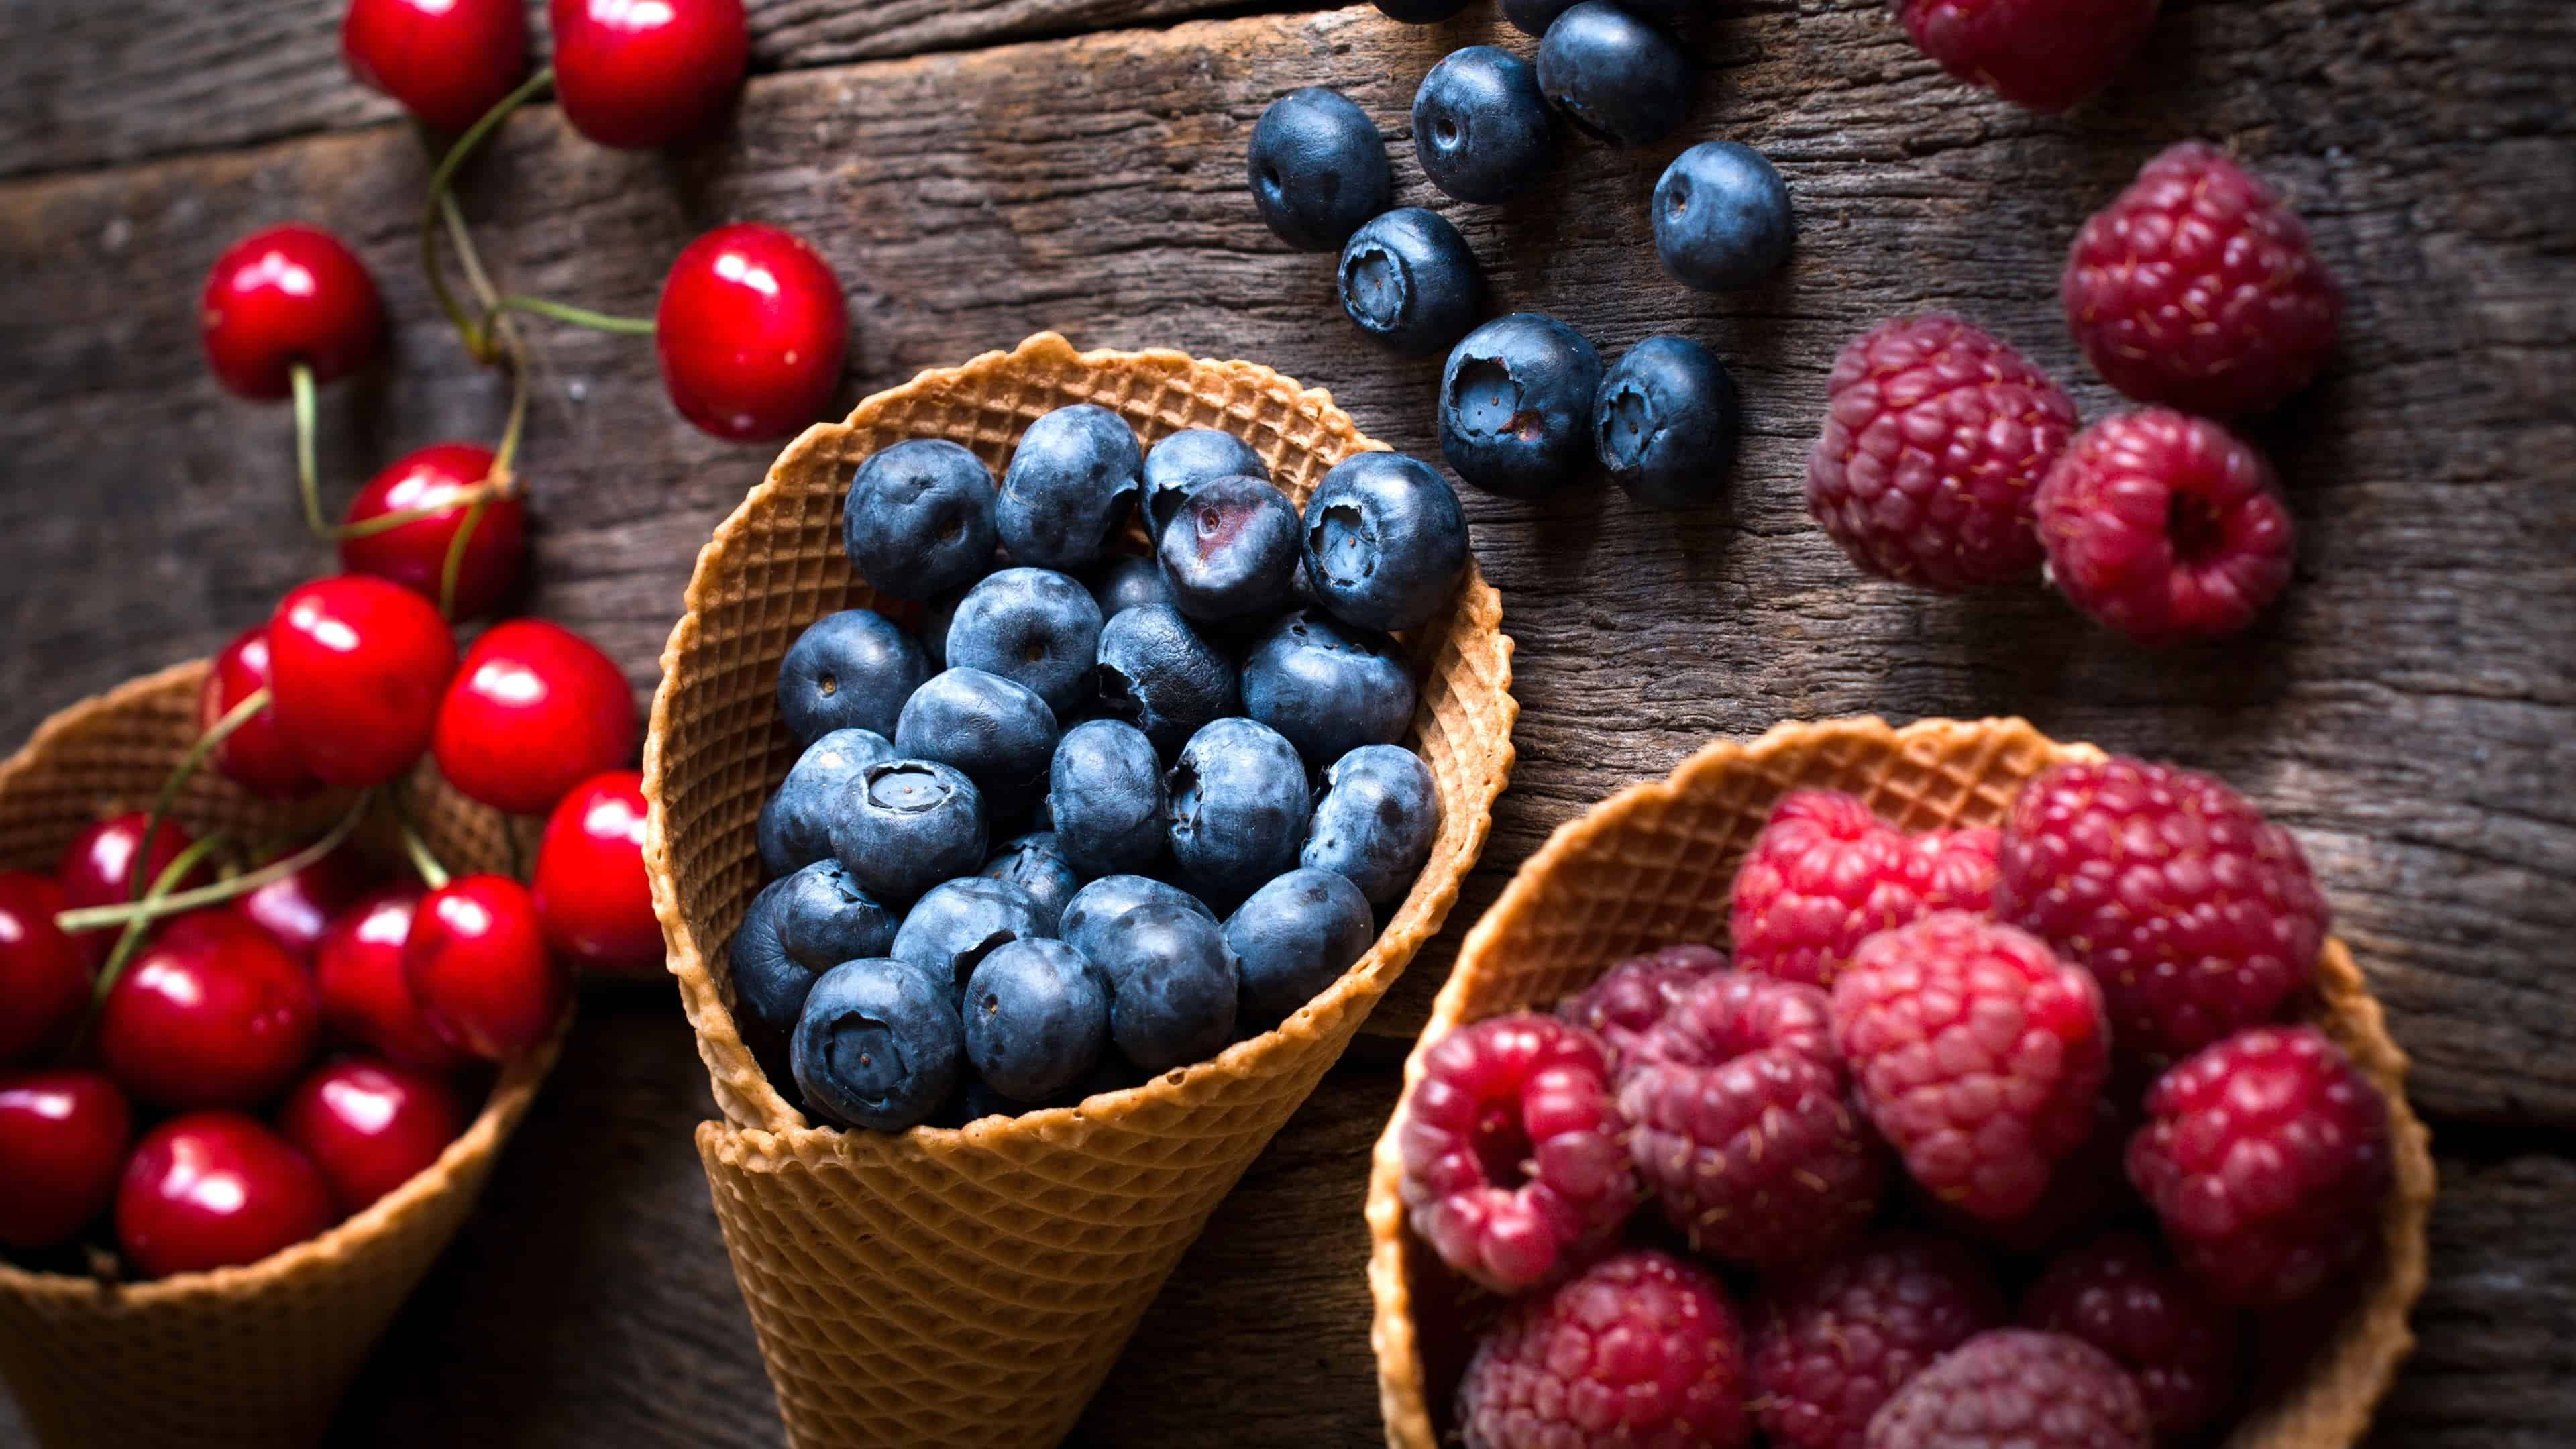 Raspberry Blueberry And Cherry Cones Uhd 4k Wallpaper Pixelz